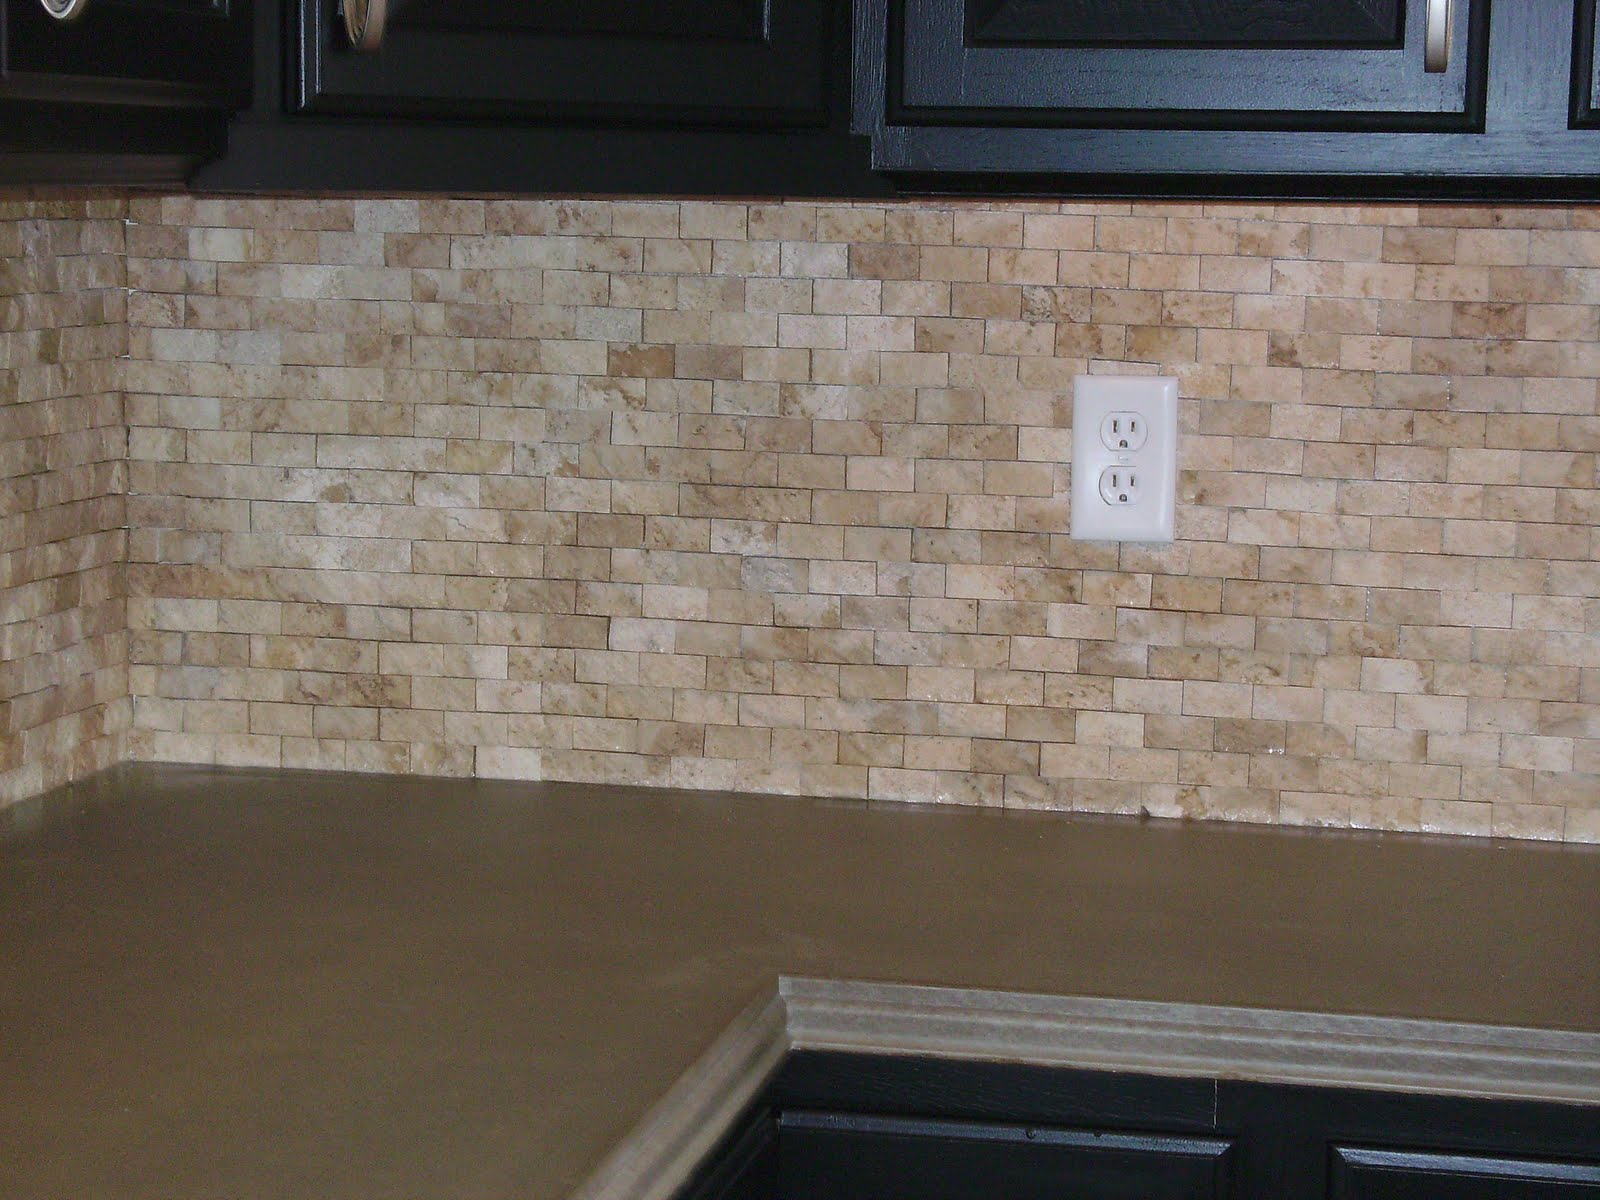 Knapp tile and flooring inc split faced stone backsplash - Kitchen backsplash tile ...